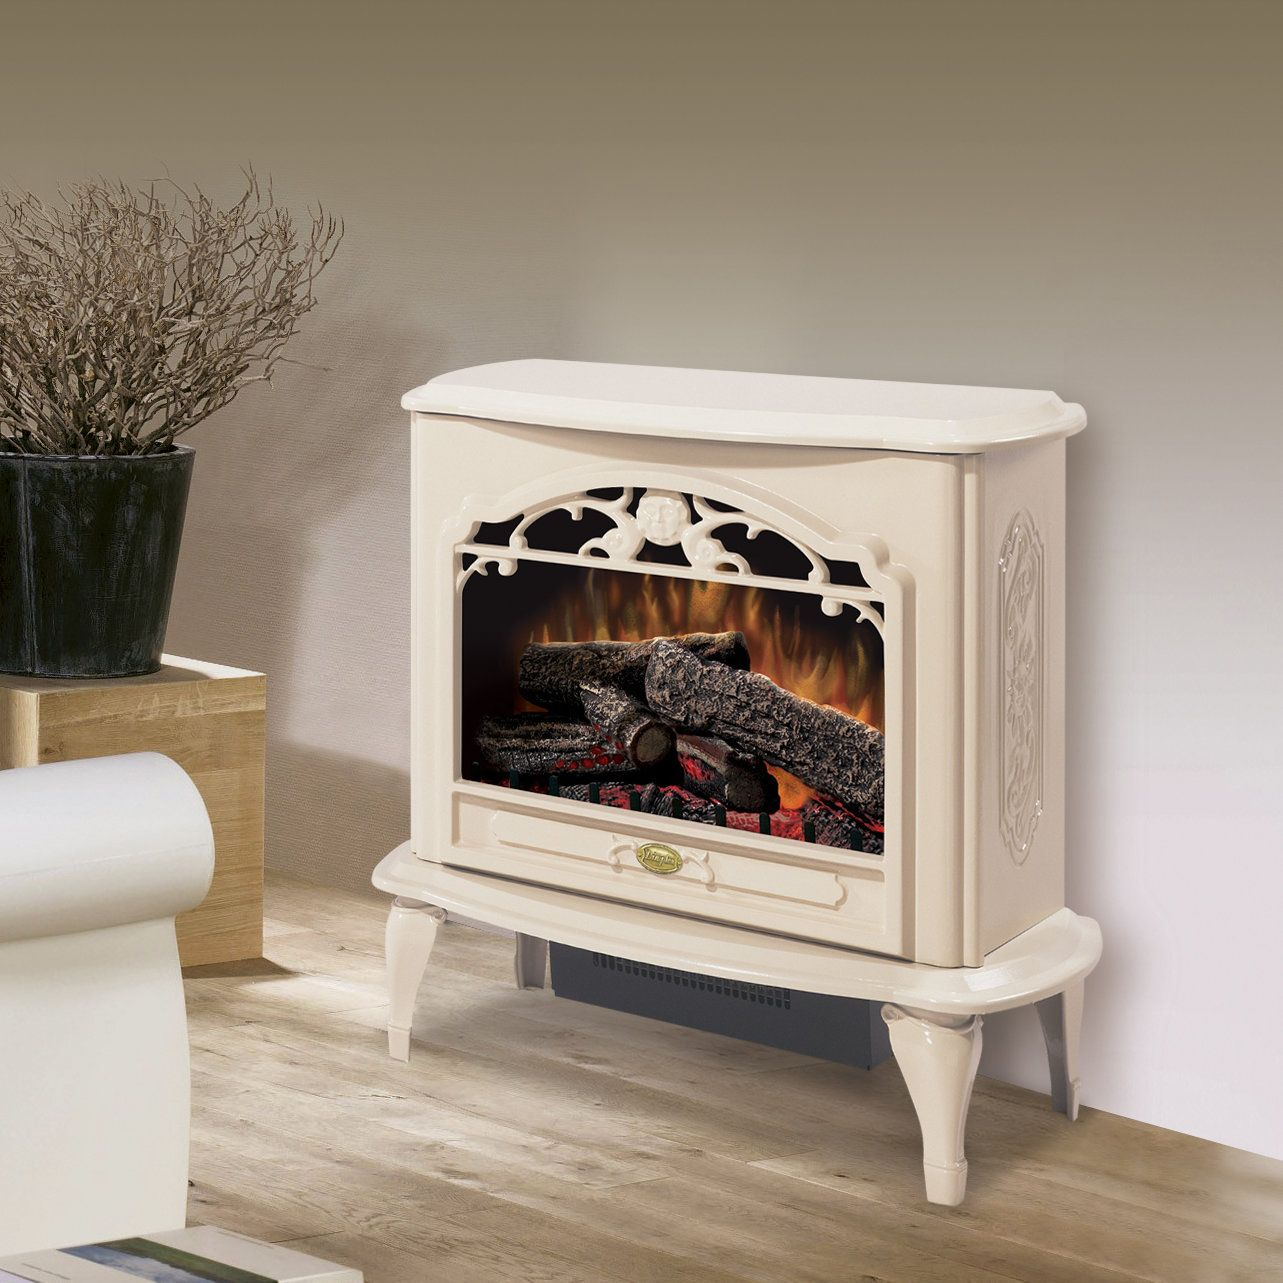 Celeste Electric Stove Products Pinterest Stove Electric